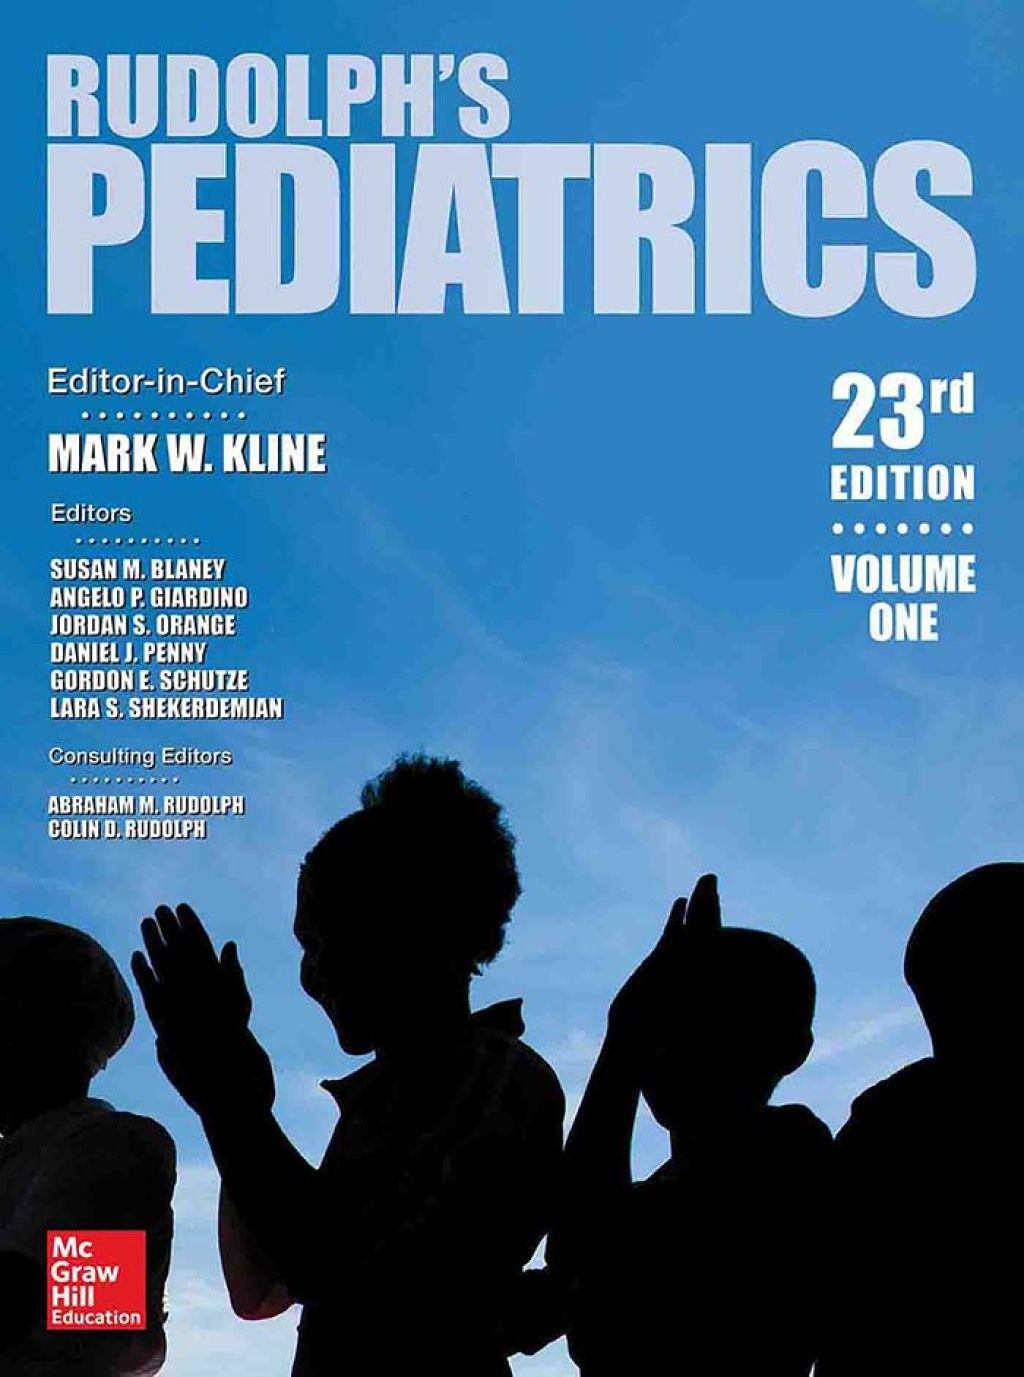 Rudolph's Pediatrics 23rd Edition (eBook) (With images